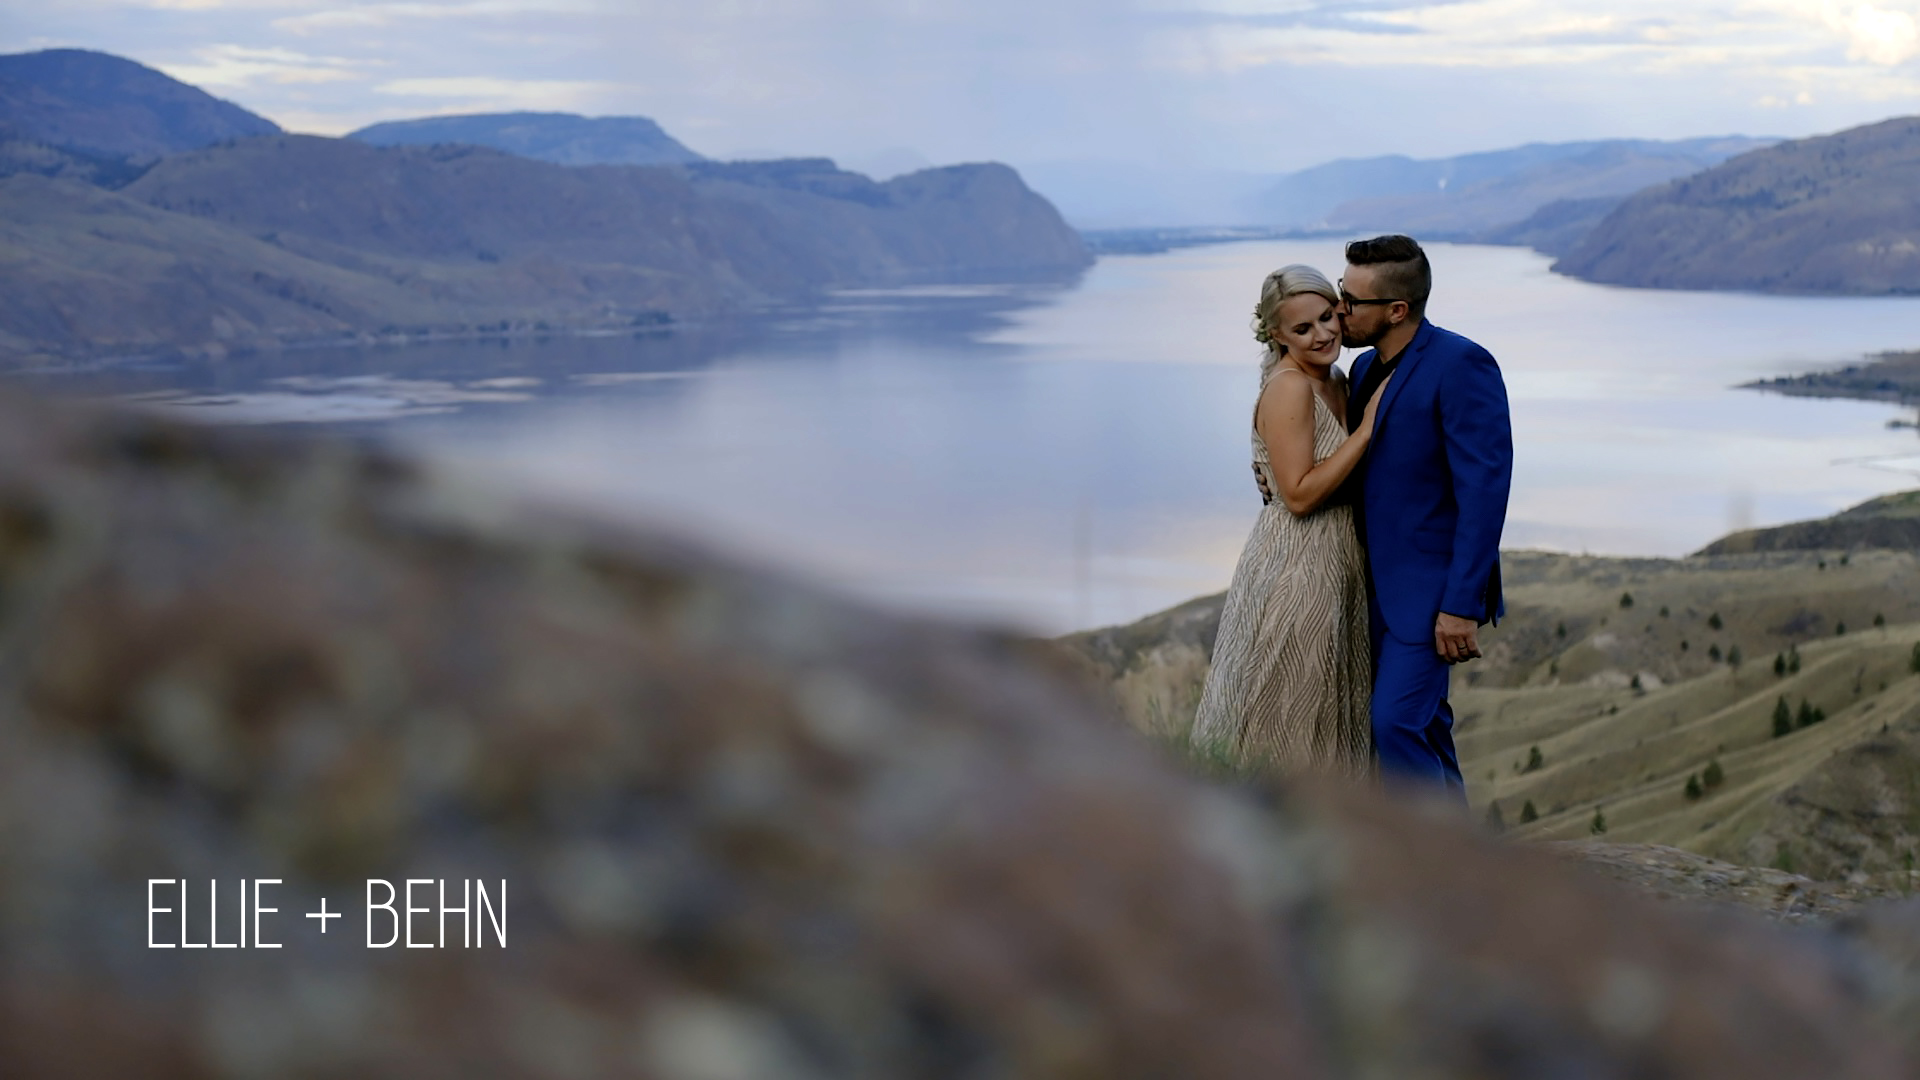 Ellie + Behn | Kamloops, Canada | Kamloops Lake